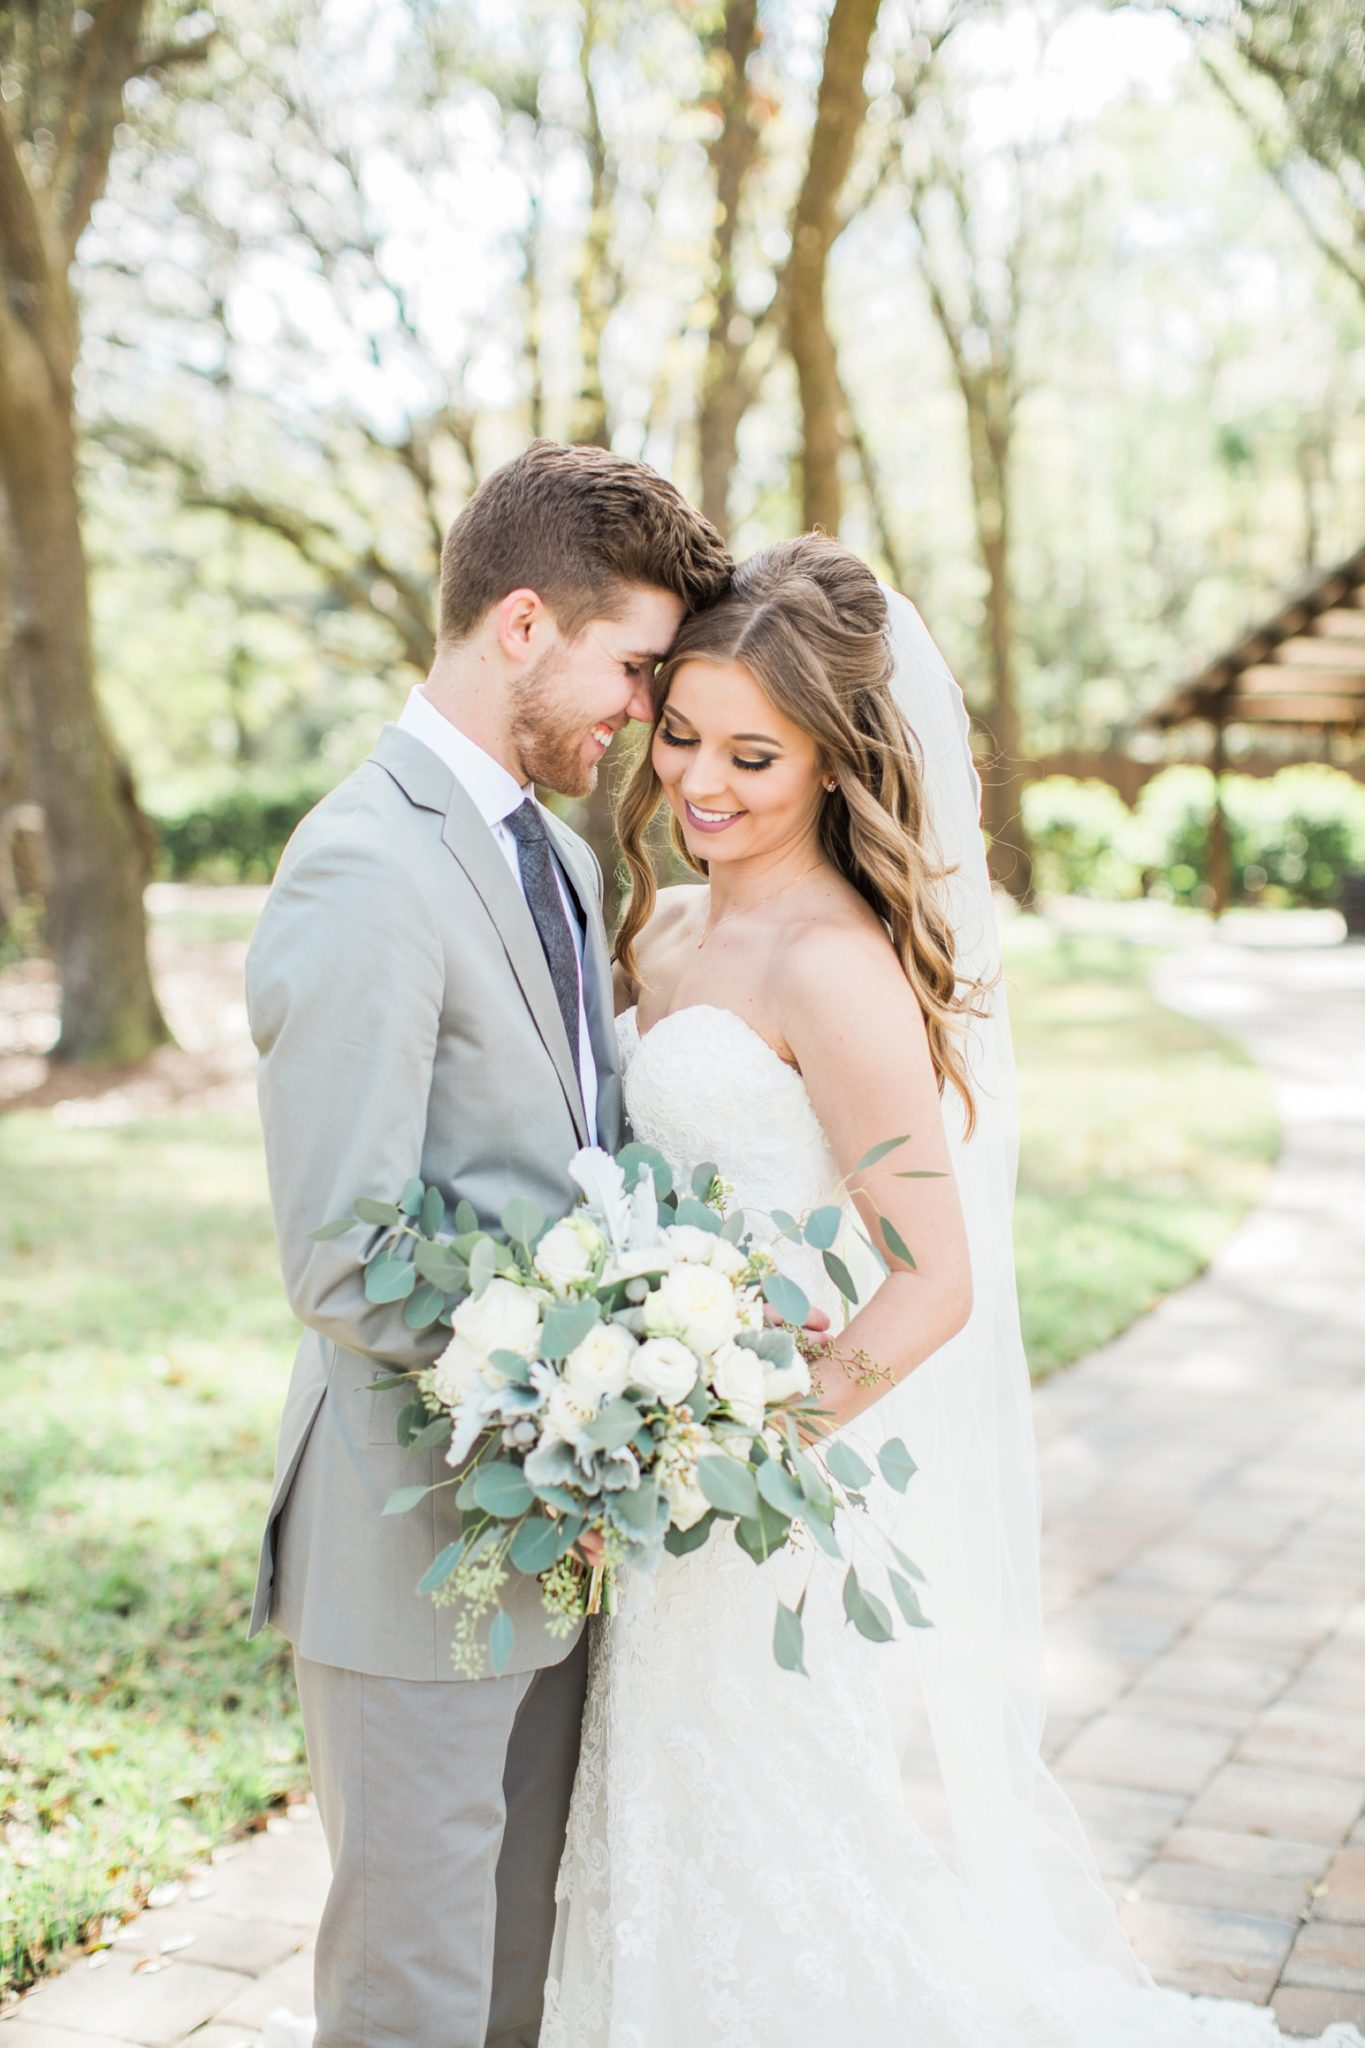 Natalie Broach Photography Moening Wedding | Bowing Oaks Plantation | Jacksonville Florida Wedding Photographer